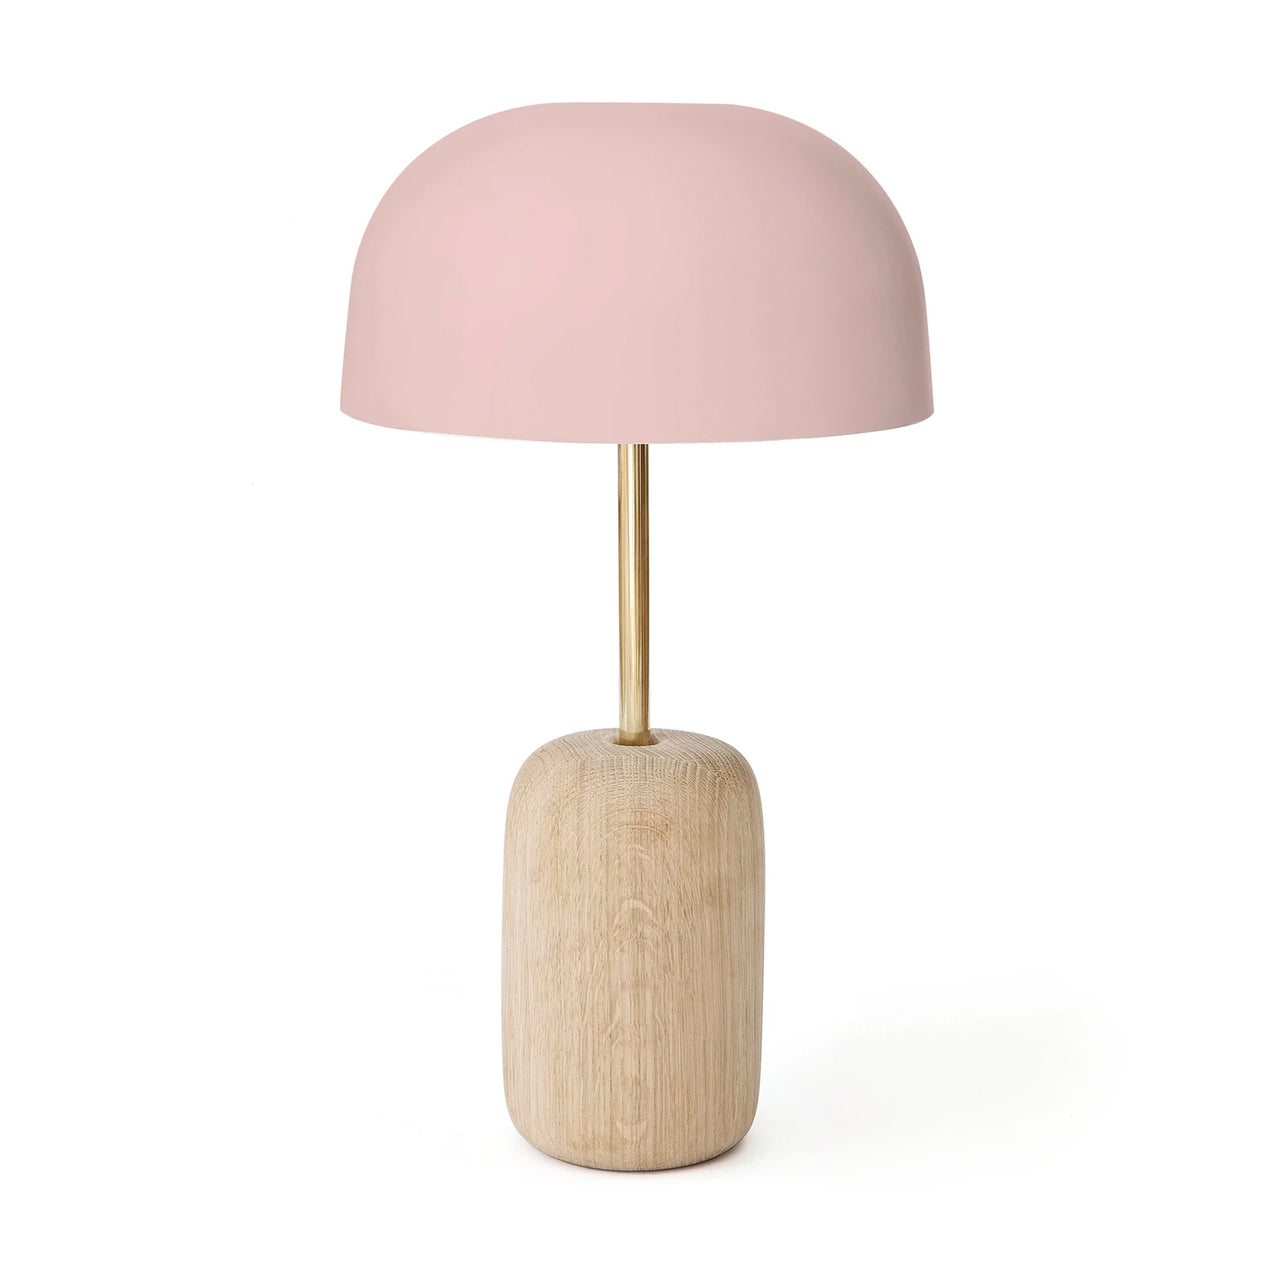 Nina Table Lamp: Pink